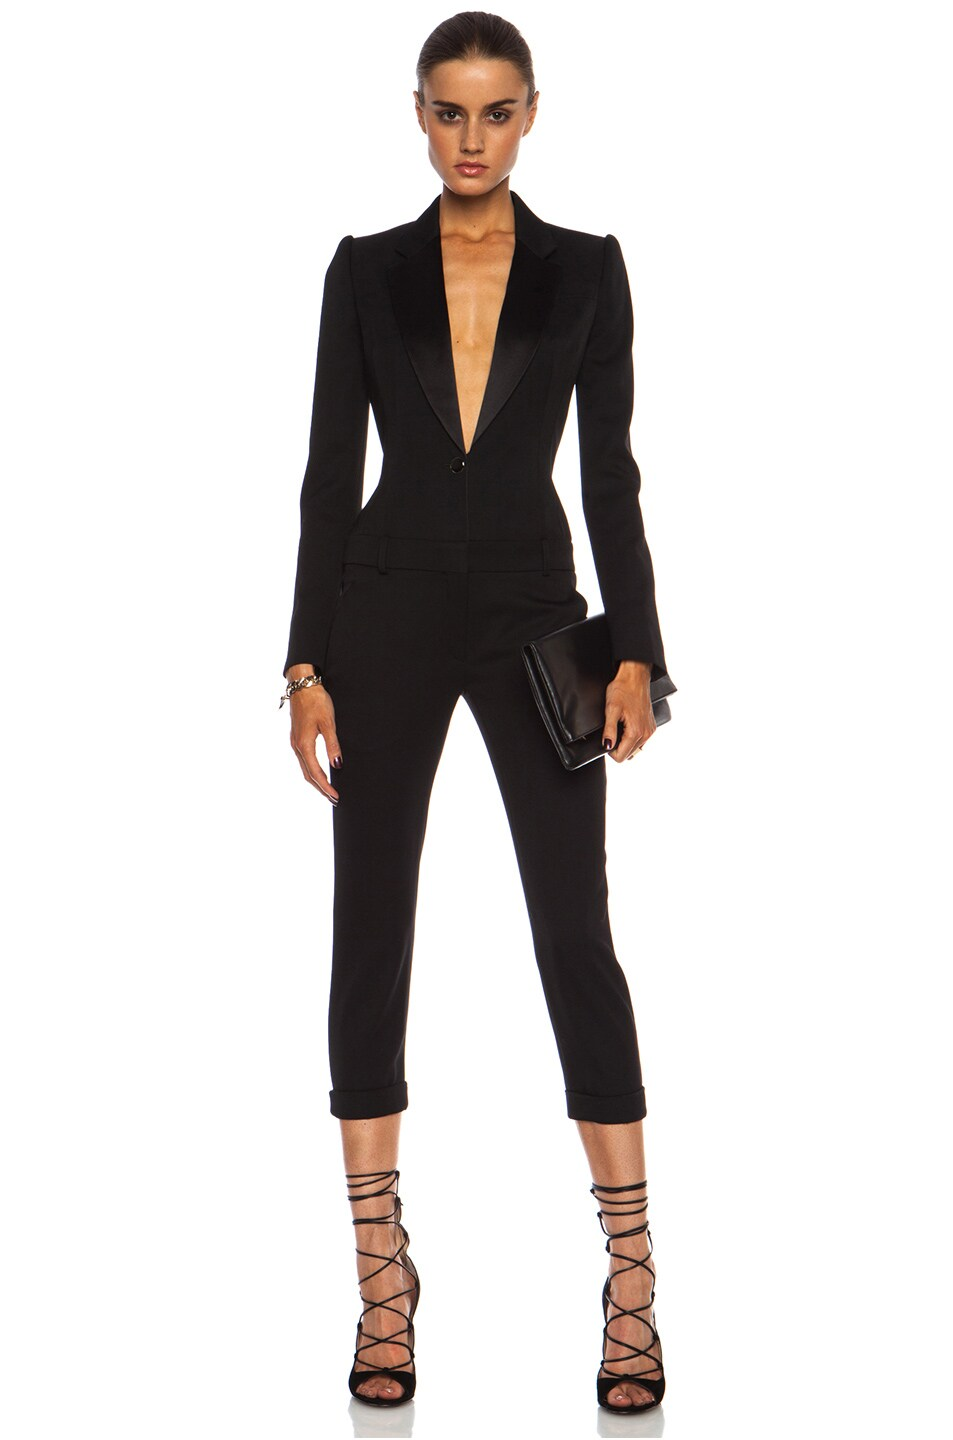 46057635bf7d Image 1 of Alexander McQueen Cigarette Tuxedo Virgin Wool Jumpsuit in Black